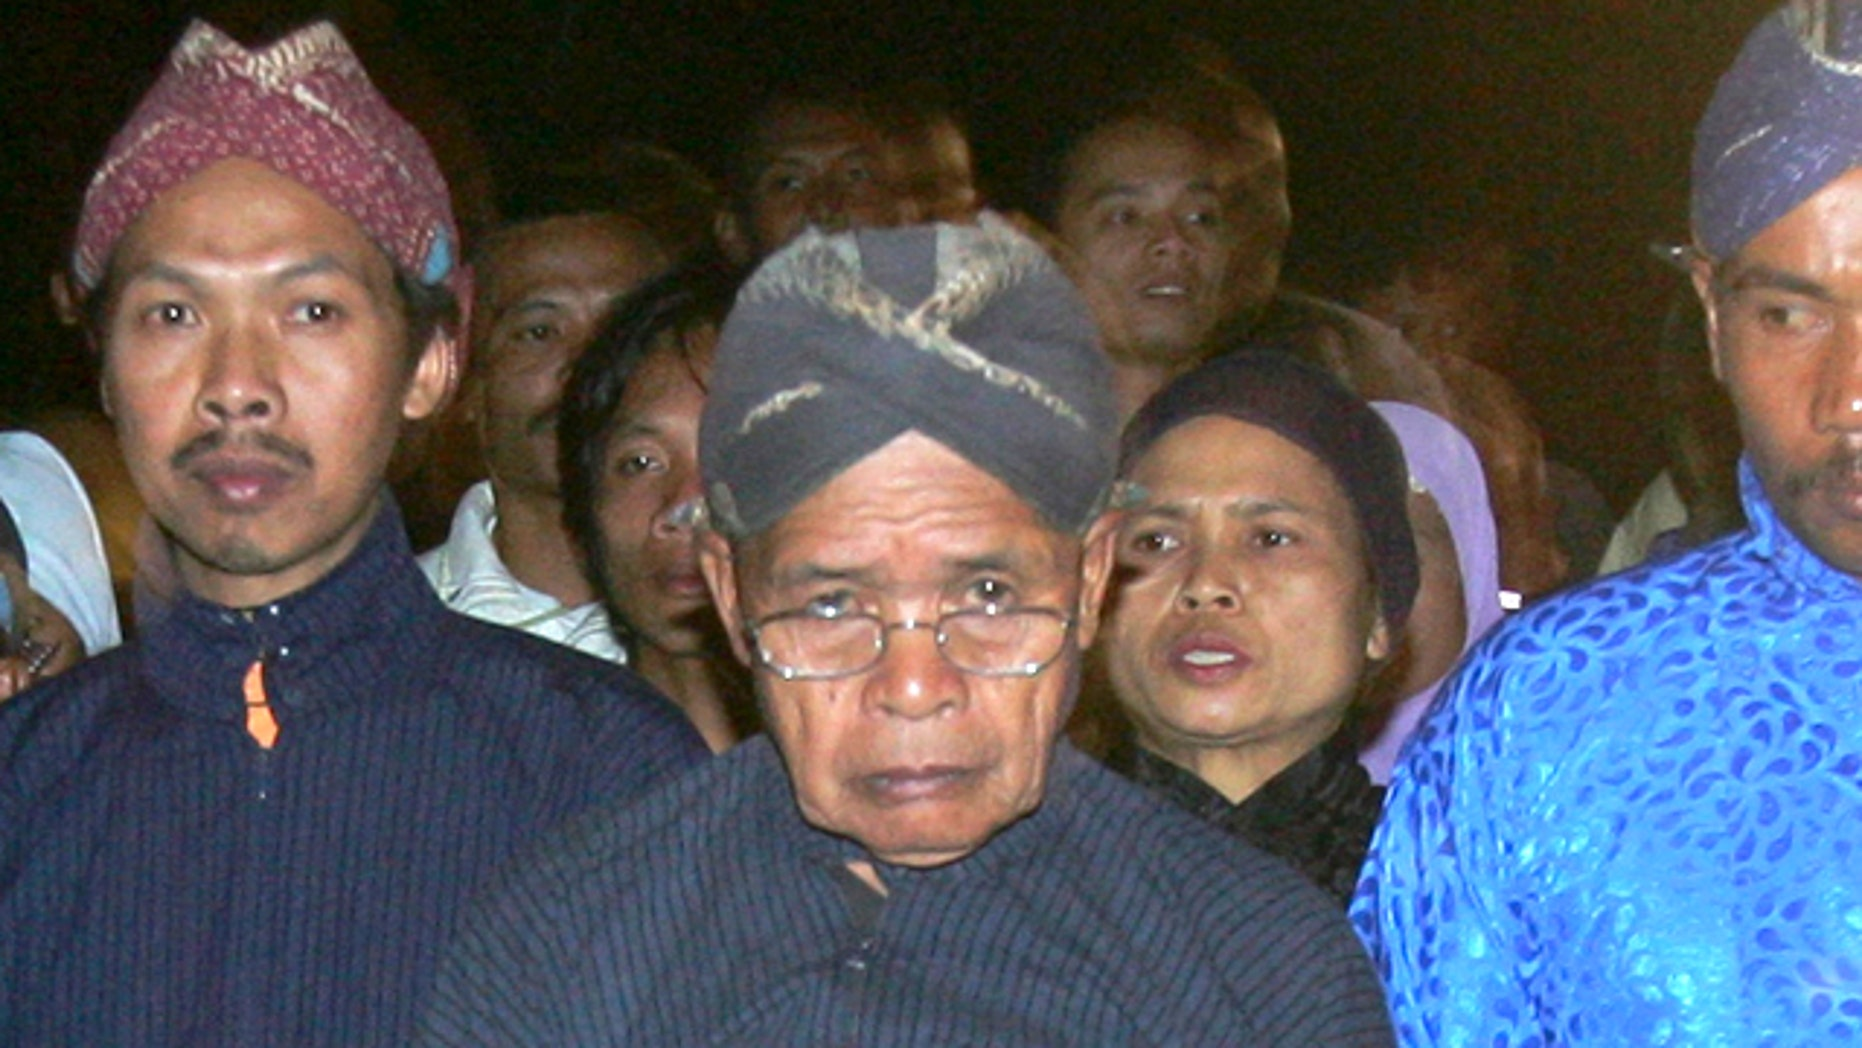 Maridjan (center), the spiritual guardian of Mount Merapi, performas a midnight walk in silence with other villagers in this 2006 photo. For 33 years, Maridjan spoke to Mount Merapi, appeasing its unpredictable spirits by offering of rice, clothes and chickens to the volcano that recently took his life.